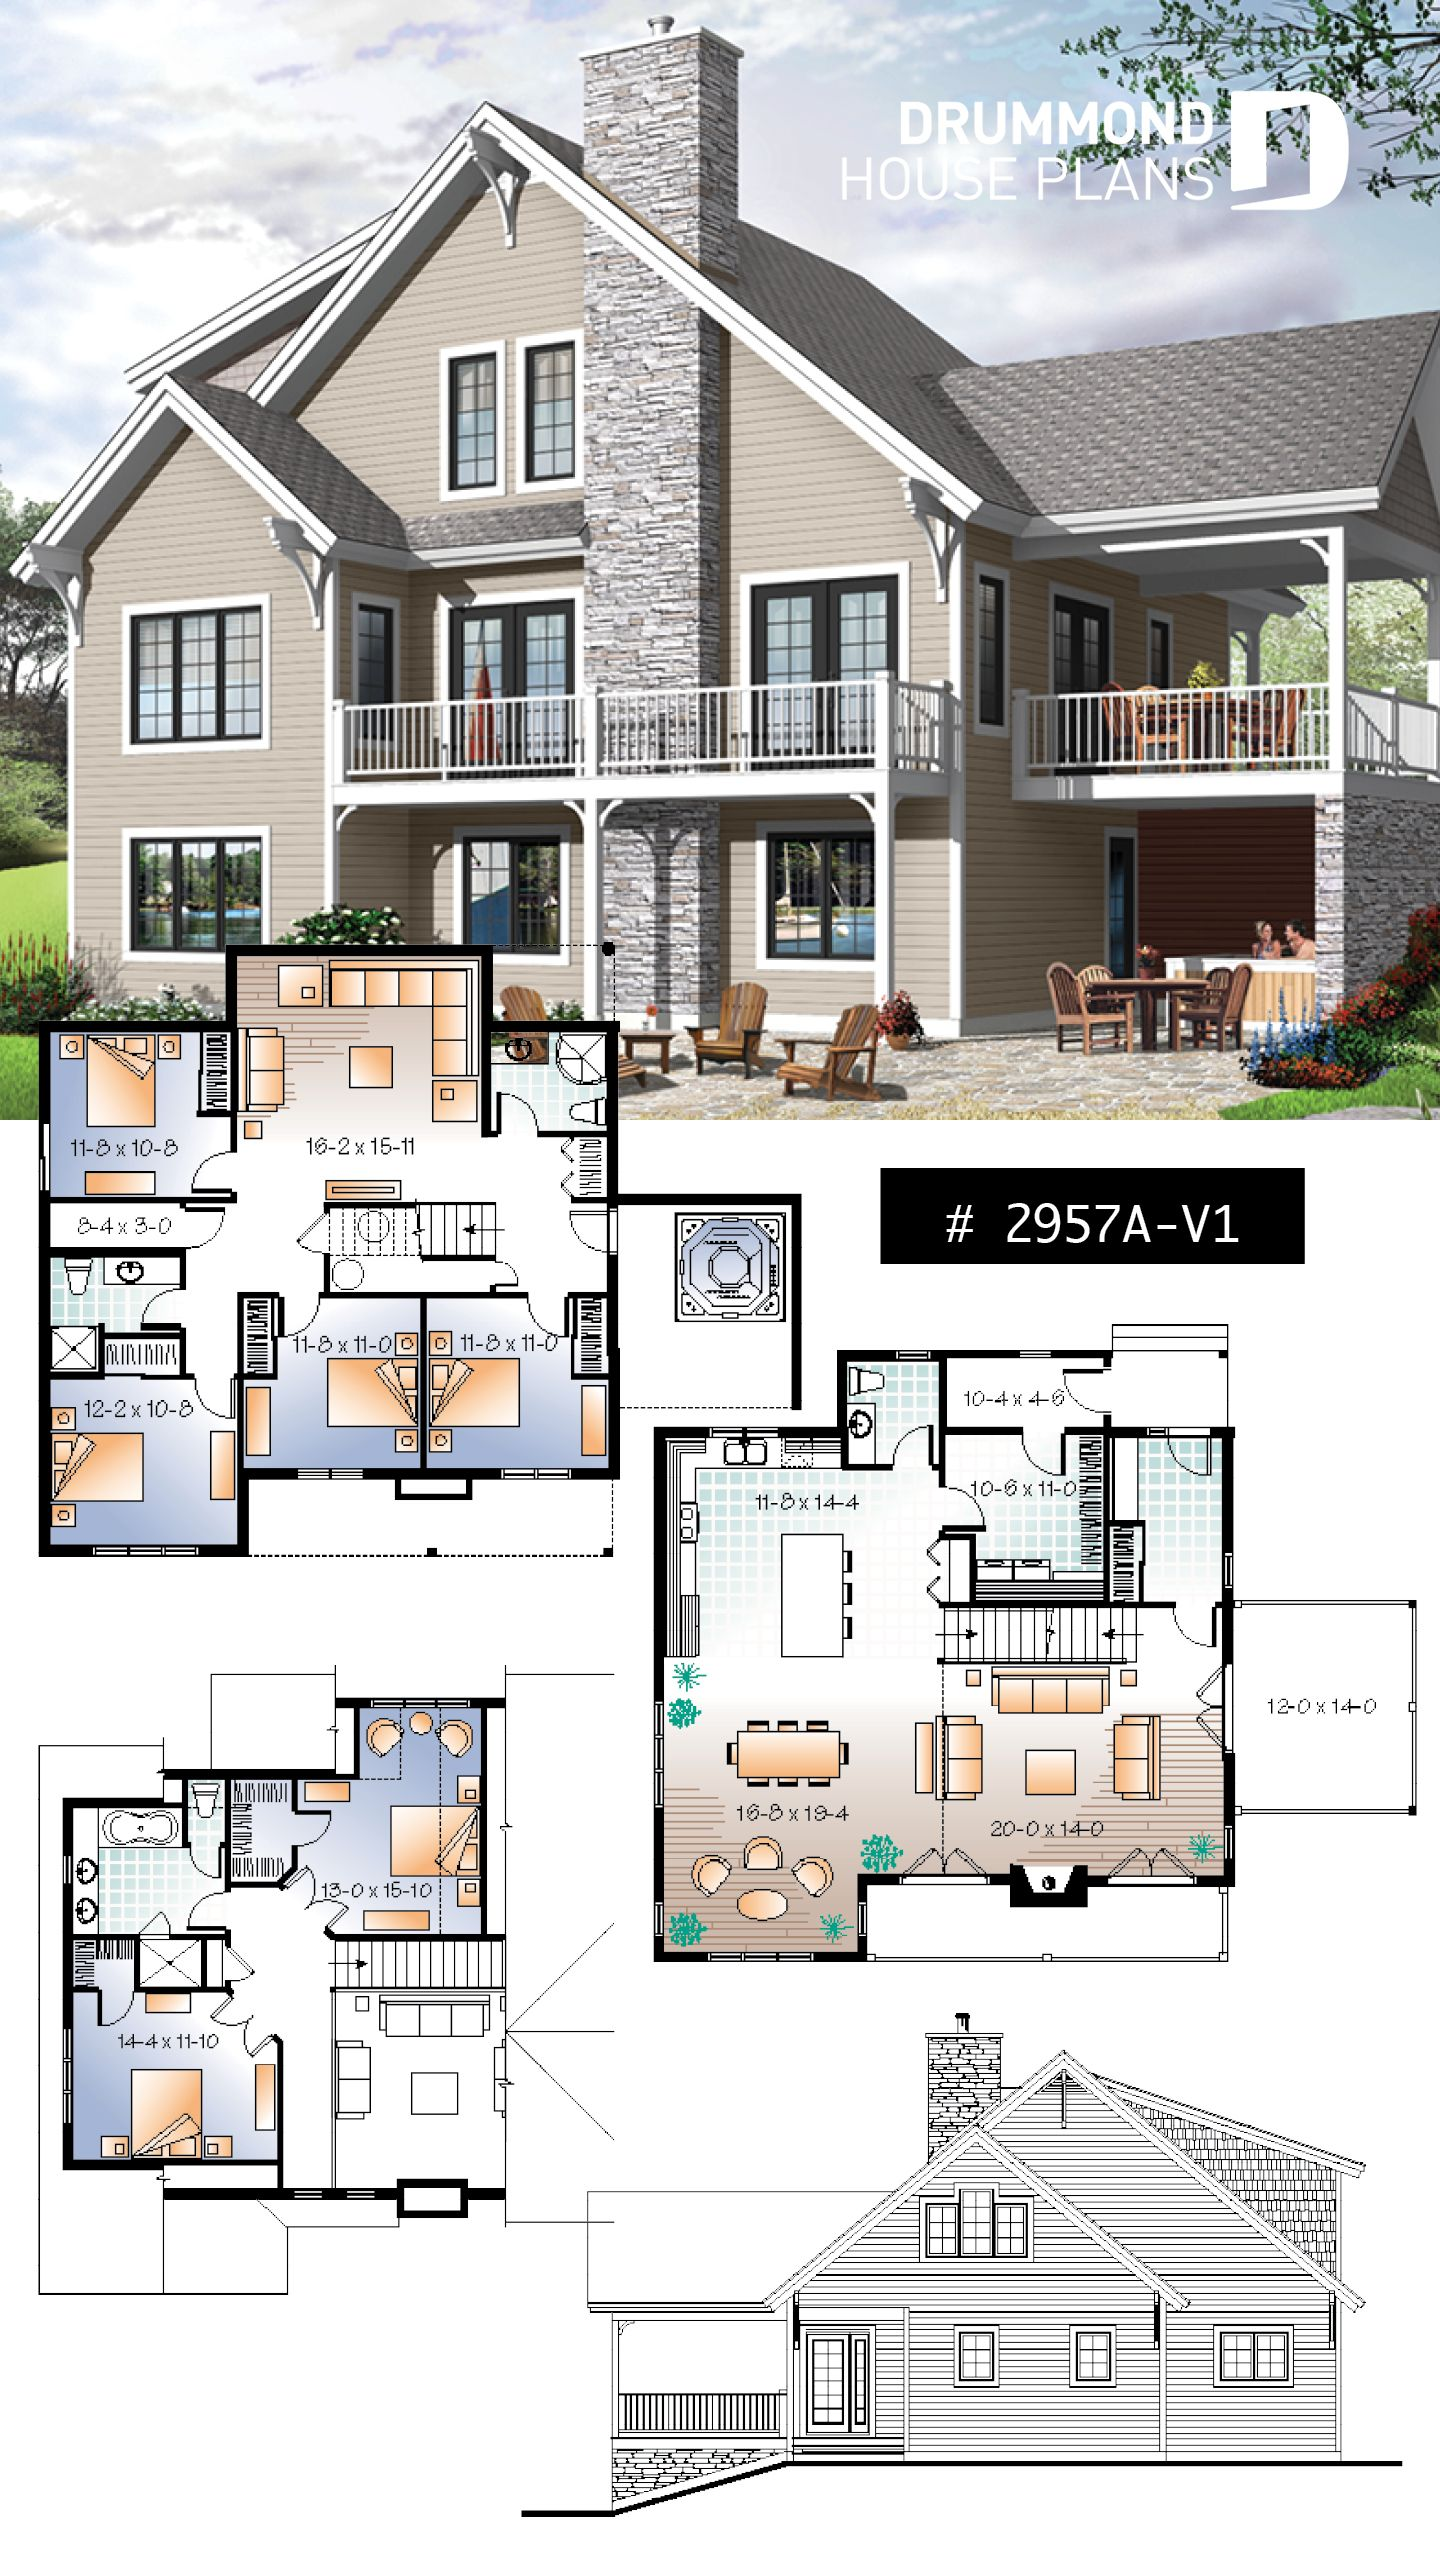 Discover The Plan 2957a V1 Touchstone 6 Which Will Please You For Its 5 2 6 3 4 Bedrooms And For Its Cottage Chalet Cabin Styles Dream House Plans Basement House Plans Cottage House Plans